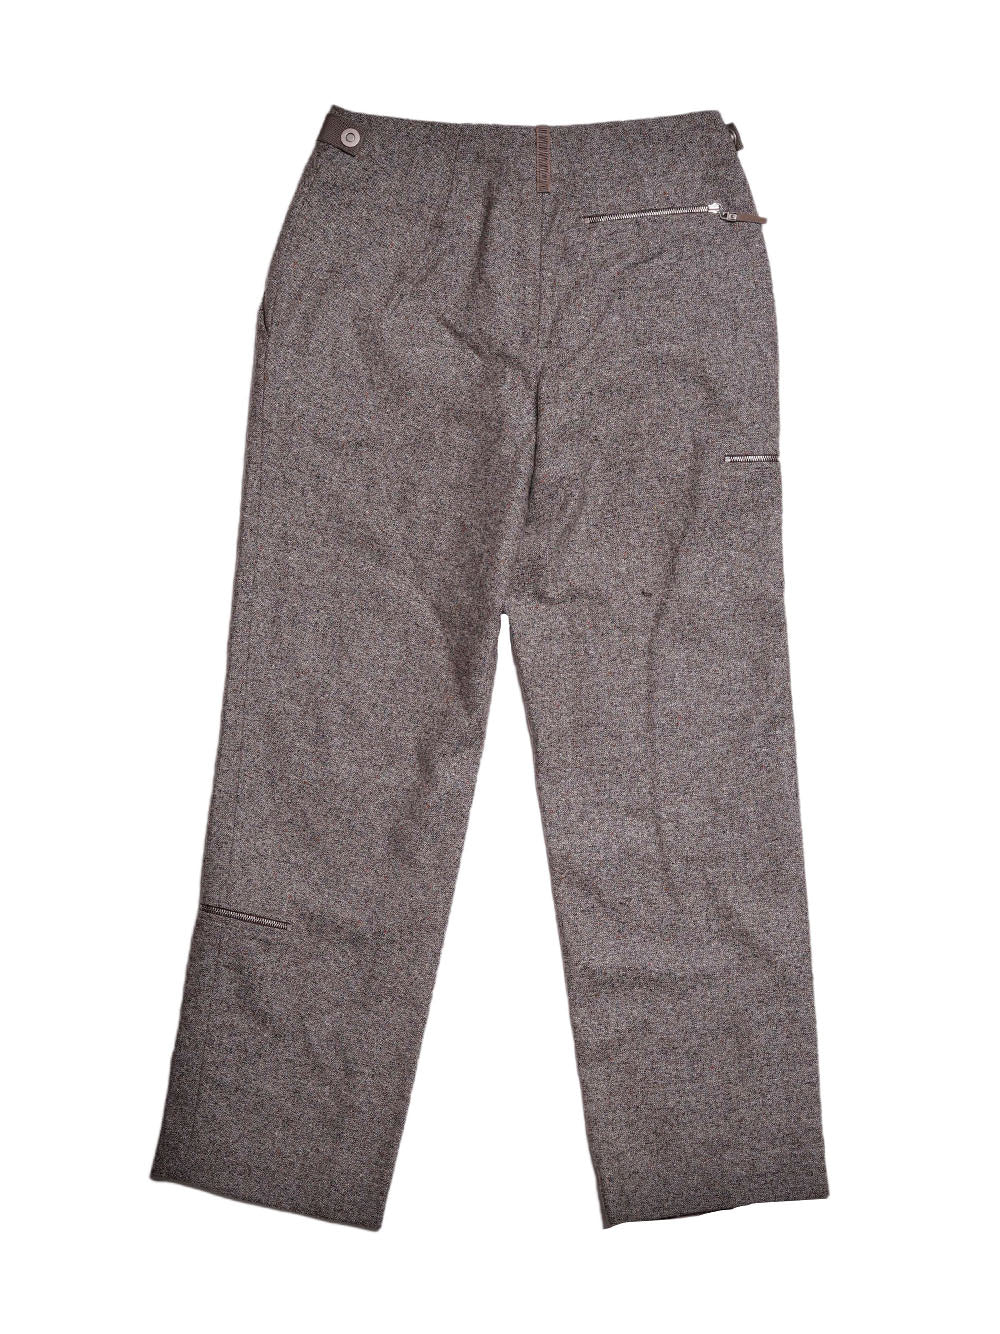 Back photo of Preloved Gunex  Grey Woman's trousers - size 6/XS